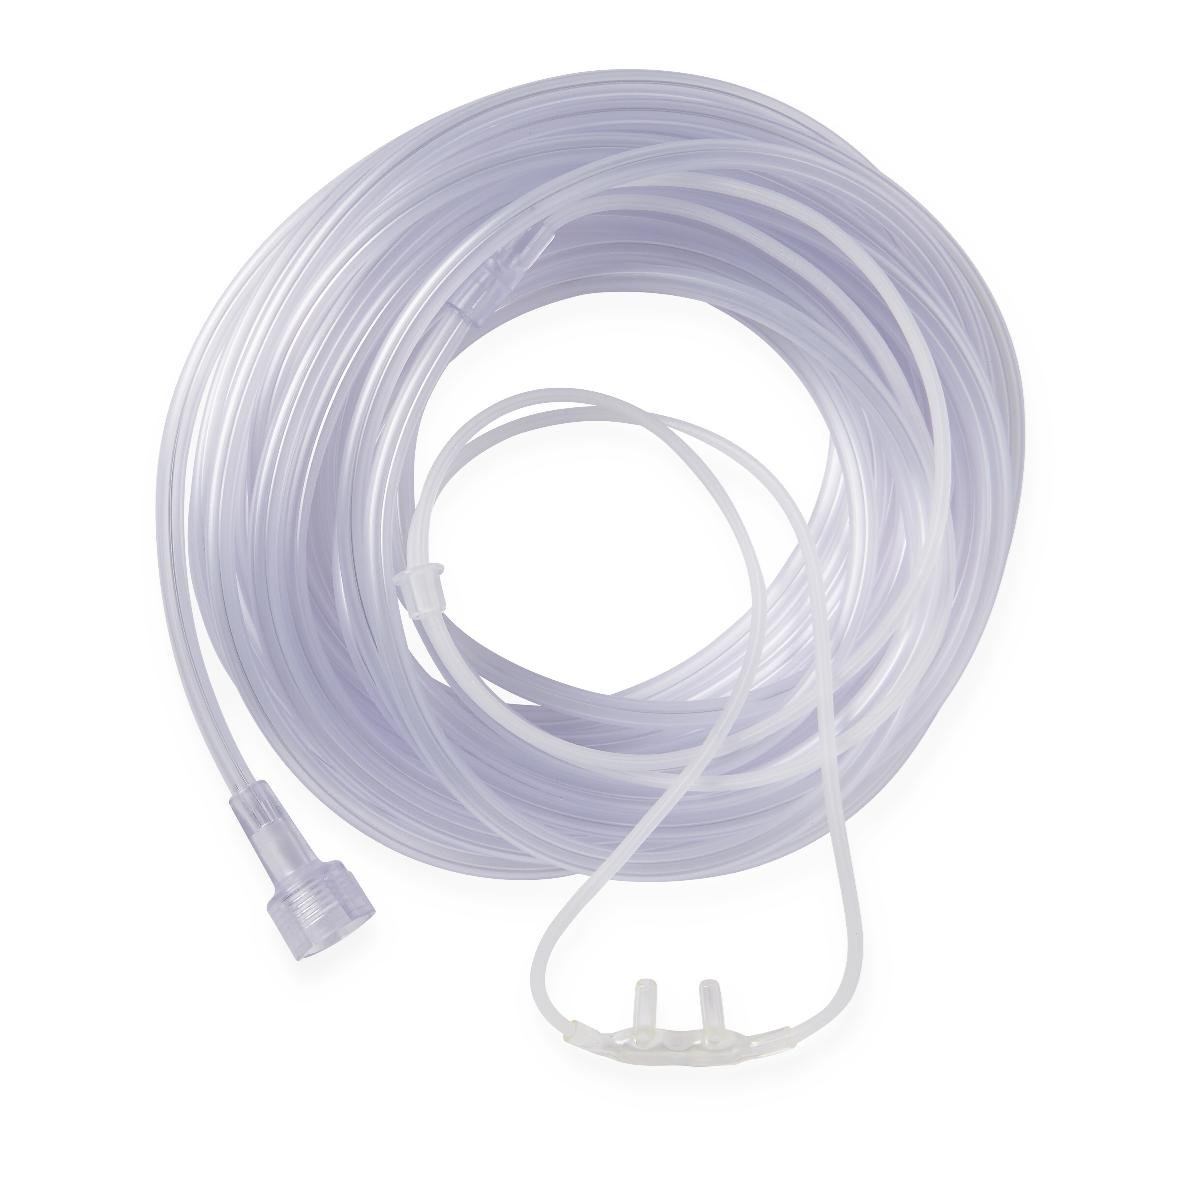 Medline HCSU4518S SuperSoft Cannulas with 7' Tubing, Pediatric (Pack of 50)